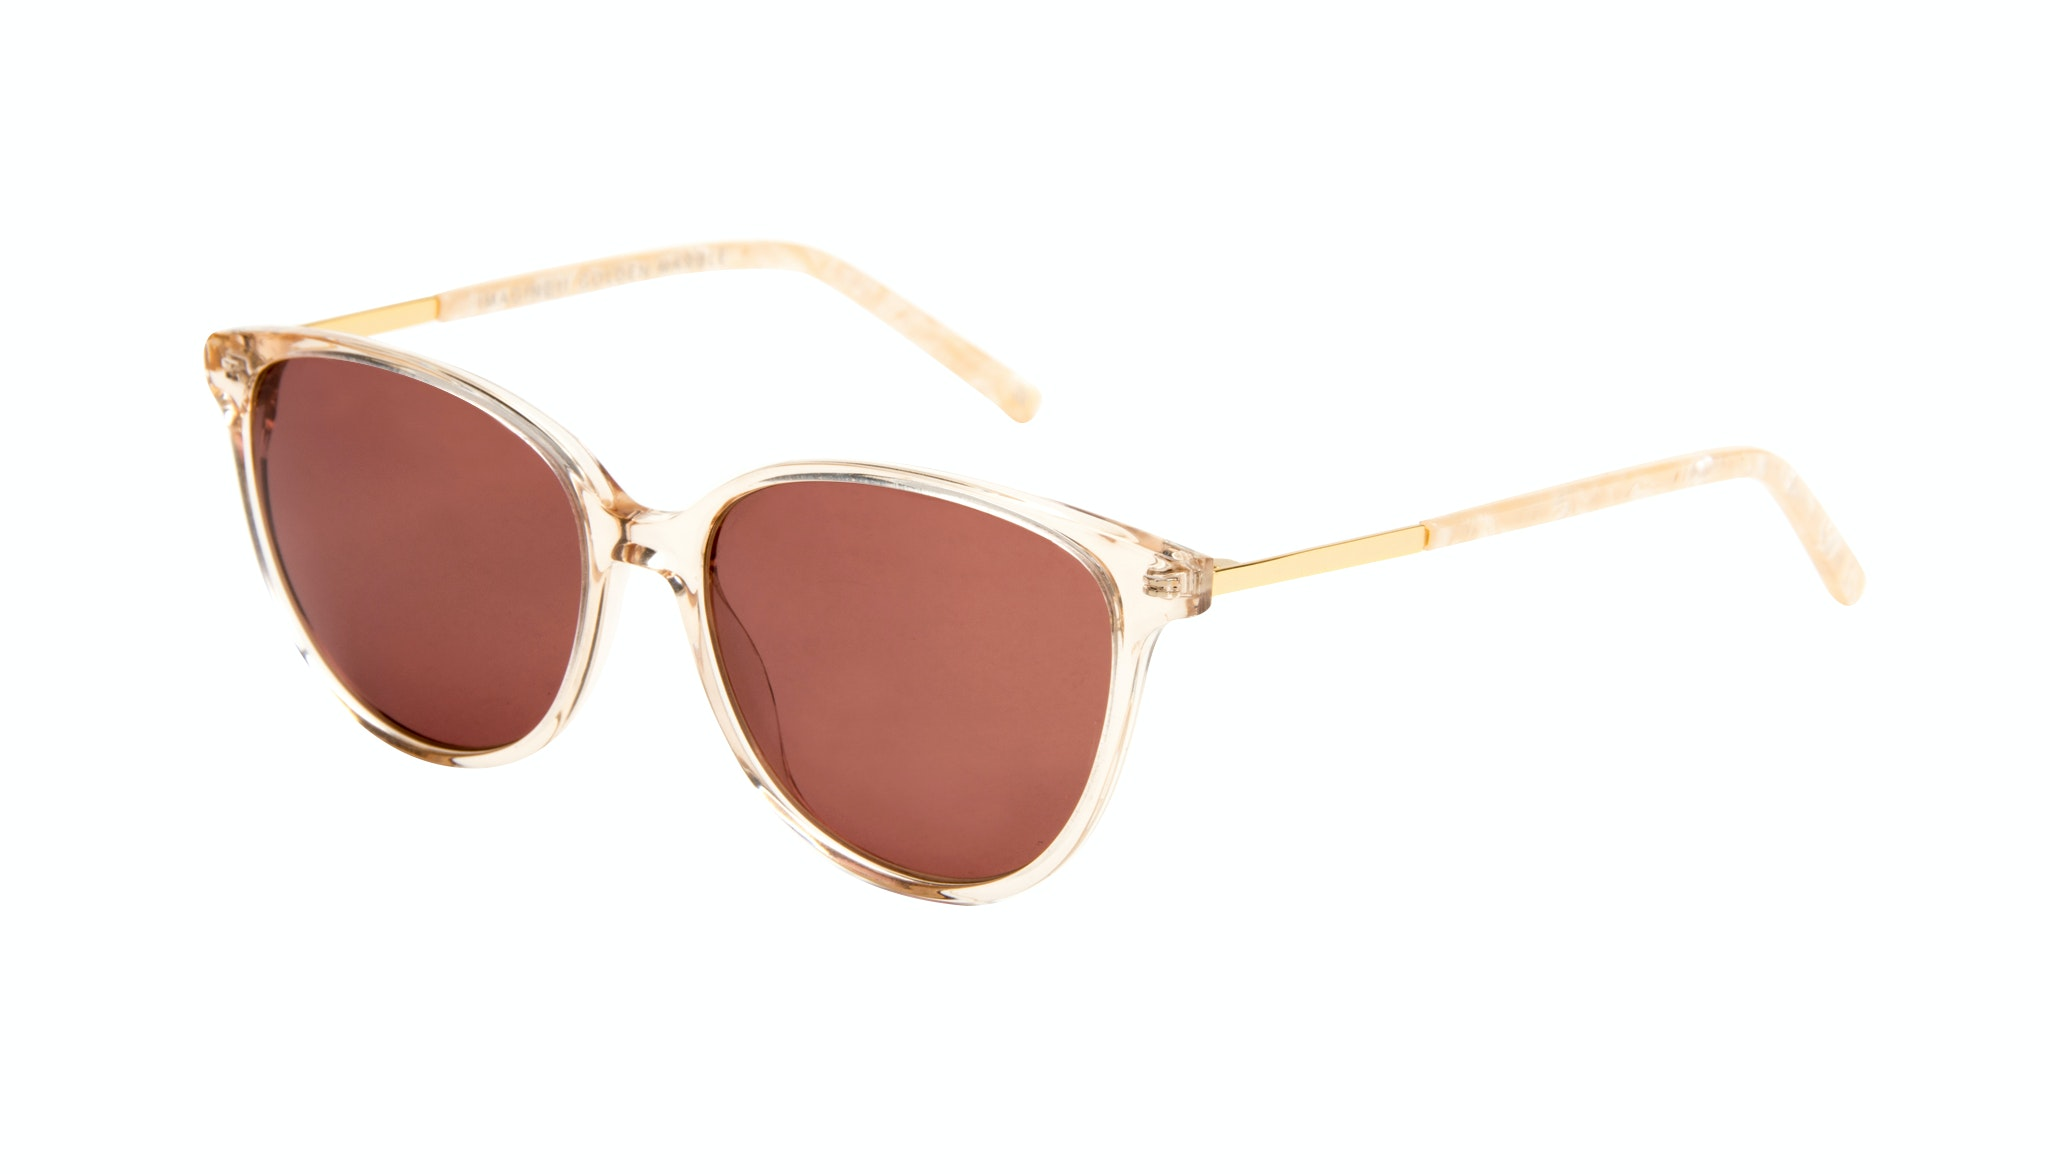 Affordable Fashion Glasses Cat Eye Sunglasses Women Imagine II Golden Marble Tilt